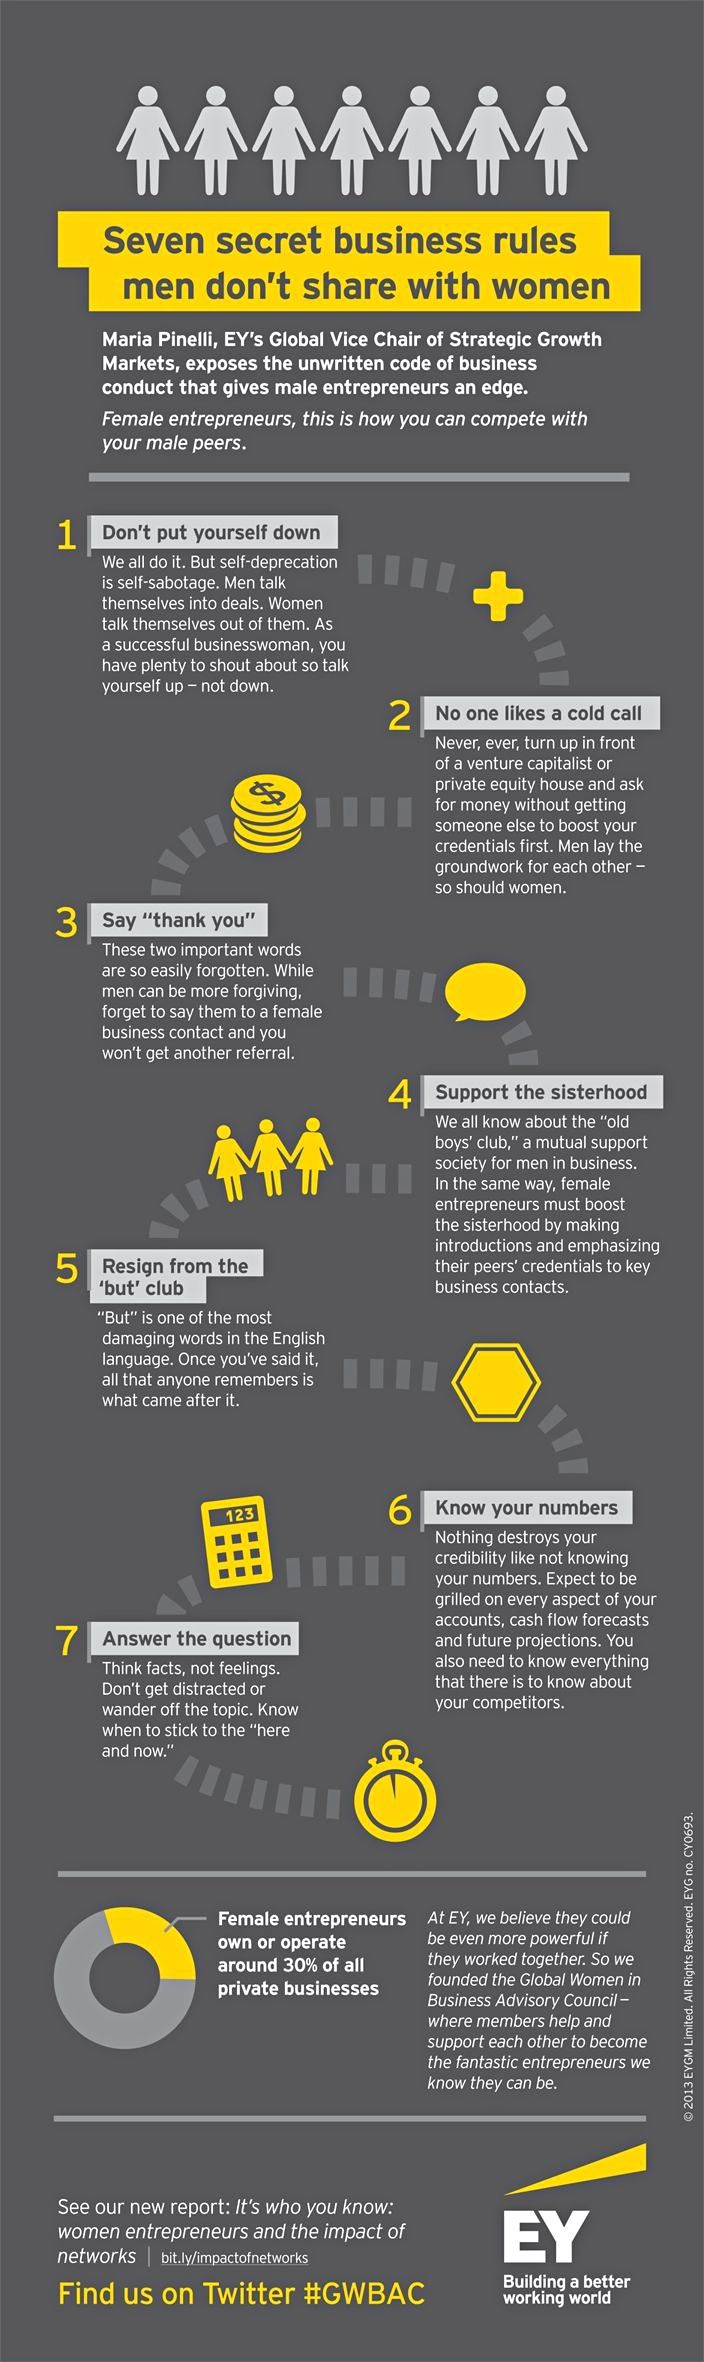 INFOGRAPHIC: 7 secret business rules men don't share with women. For women entrepreneurs this is how you can compete with your male peers. Ernst & Young's global vice chair of strategic growth markets Maria Pinelli exposes the unwritten code of business conduct that gives male entrepreneurs an edge.